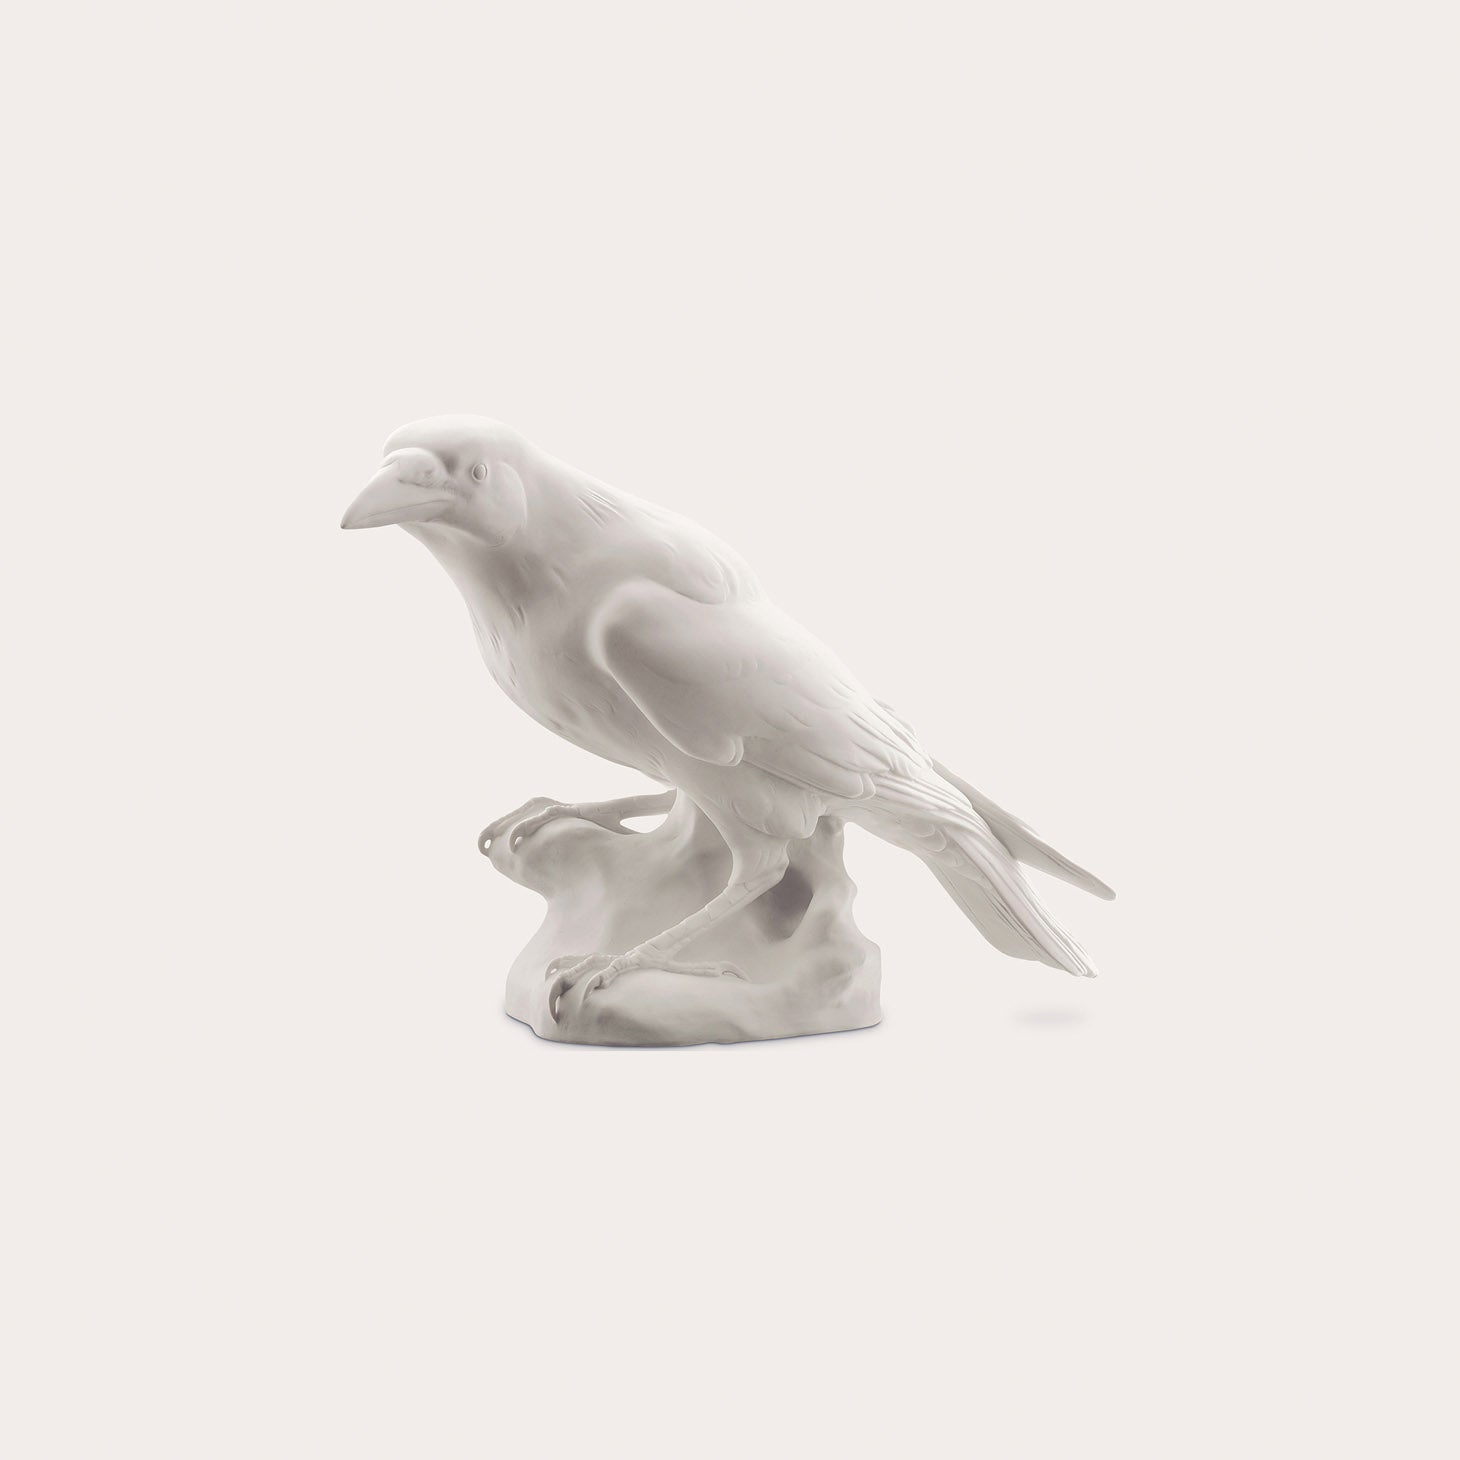 Birds-Raven Accessories Nymphenburg Designer Furniture Sku: 542-100-10193